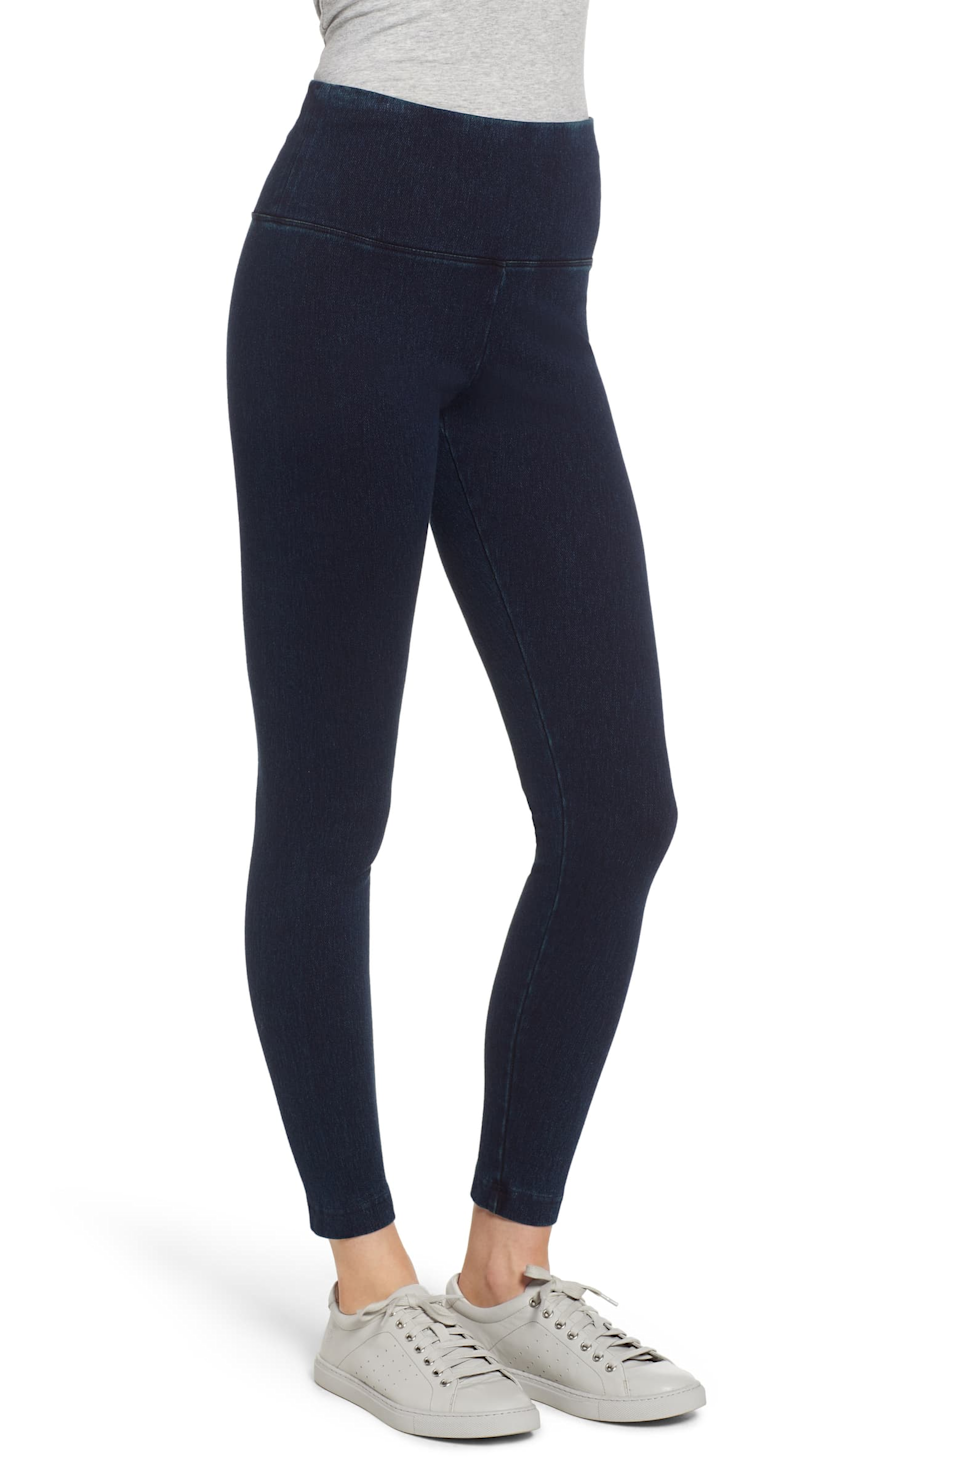 "<h3><a href=""https://www.nordstrom.com/s/lysse-high-waist-denim-leggings/4089752"" rel=""nofollow noopener"" target=""_blank"" data-ylk=""slk:Lyssé High Waist Denim Leggings"" class=""link rapid-noclick-resp"">Lyssé High Waist Denim Leggings</a></h3><br>After a few weeks at home, it's come to everyone's attention that jeans simply are ""hard pants."" Another realization, jeggings might not be so bad after all... And this cozy pair is 40% off.<br><br><strong>Lysse</strong> High Waist Denim Leggings, $, available at <a href=""https://go.skimresources.com/?id=30283X879131&url=https%3A%2F%2Fwww.nordstrom.com%2Fs%2Flysse-high-waist-denim-leggings%2F4089752"" rel=""nofollow noopener"" target=""_blank"" data-ylk=""slk:Nordstrom"" class=""link rapid-noclick-resp"">Nordstrom</a>"